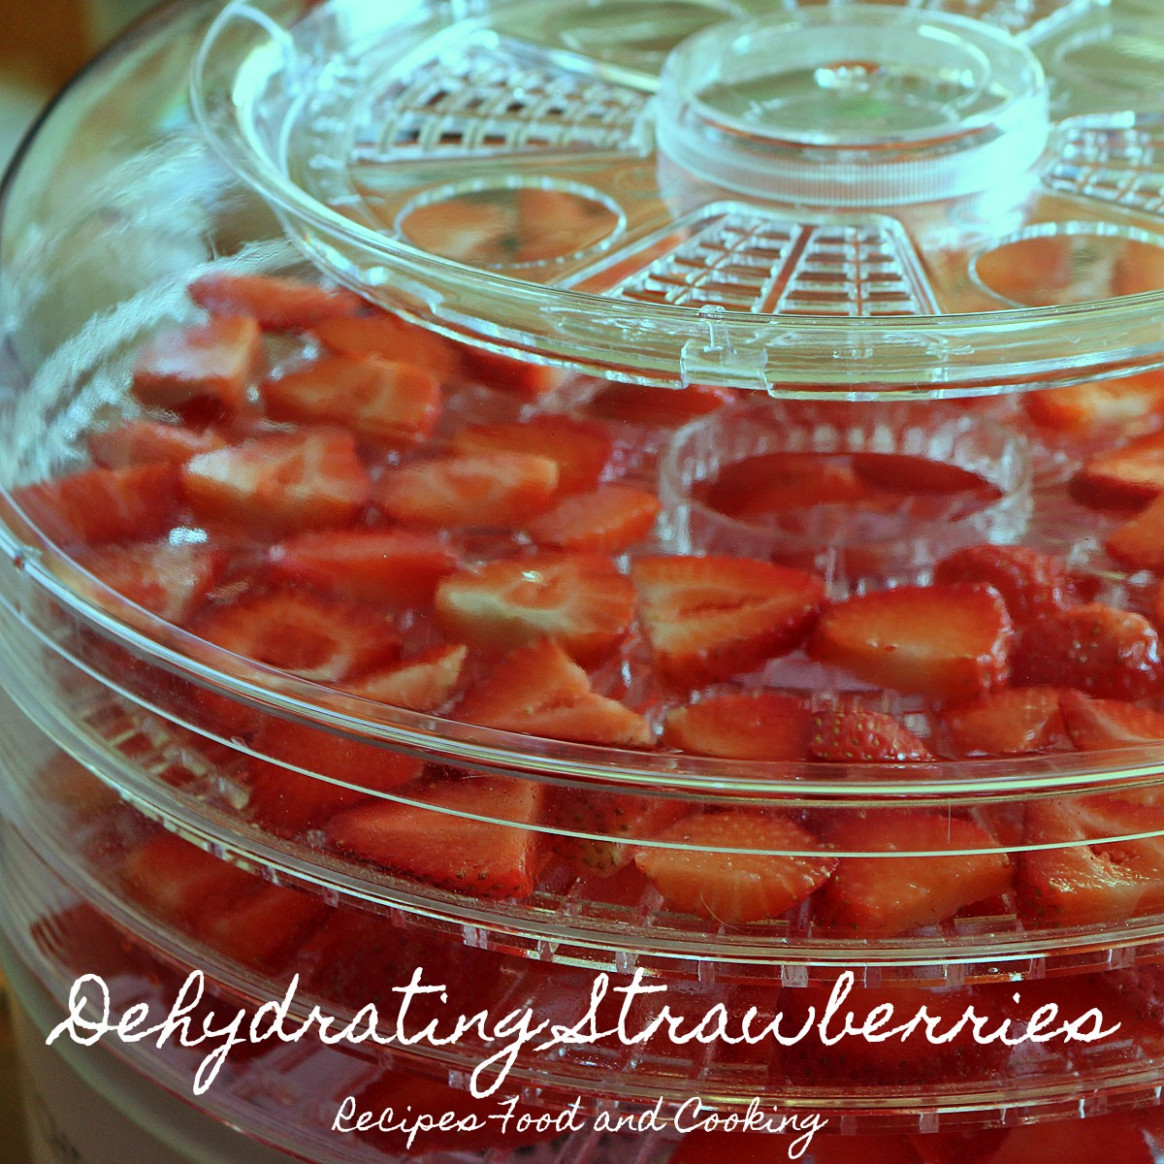 How To Dehydrate Strawberries - dehydrated food recipes